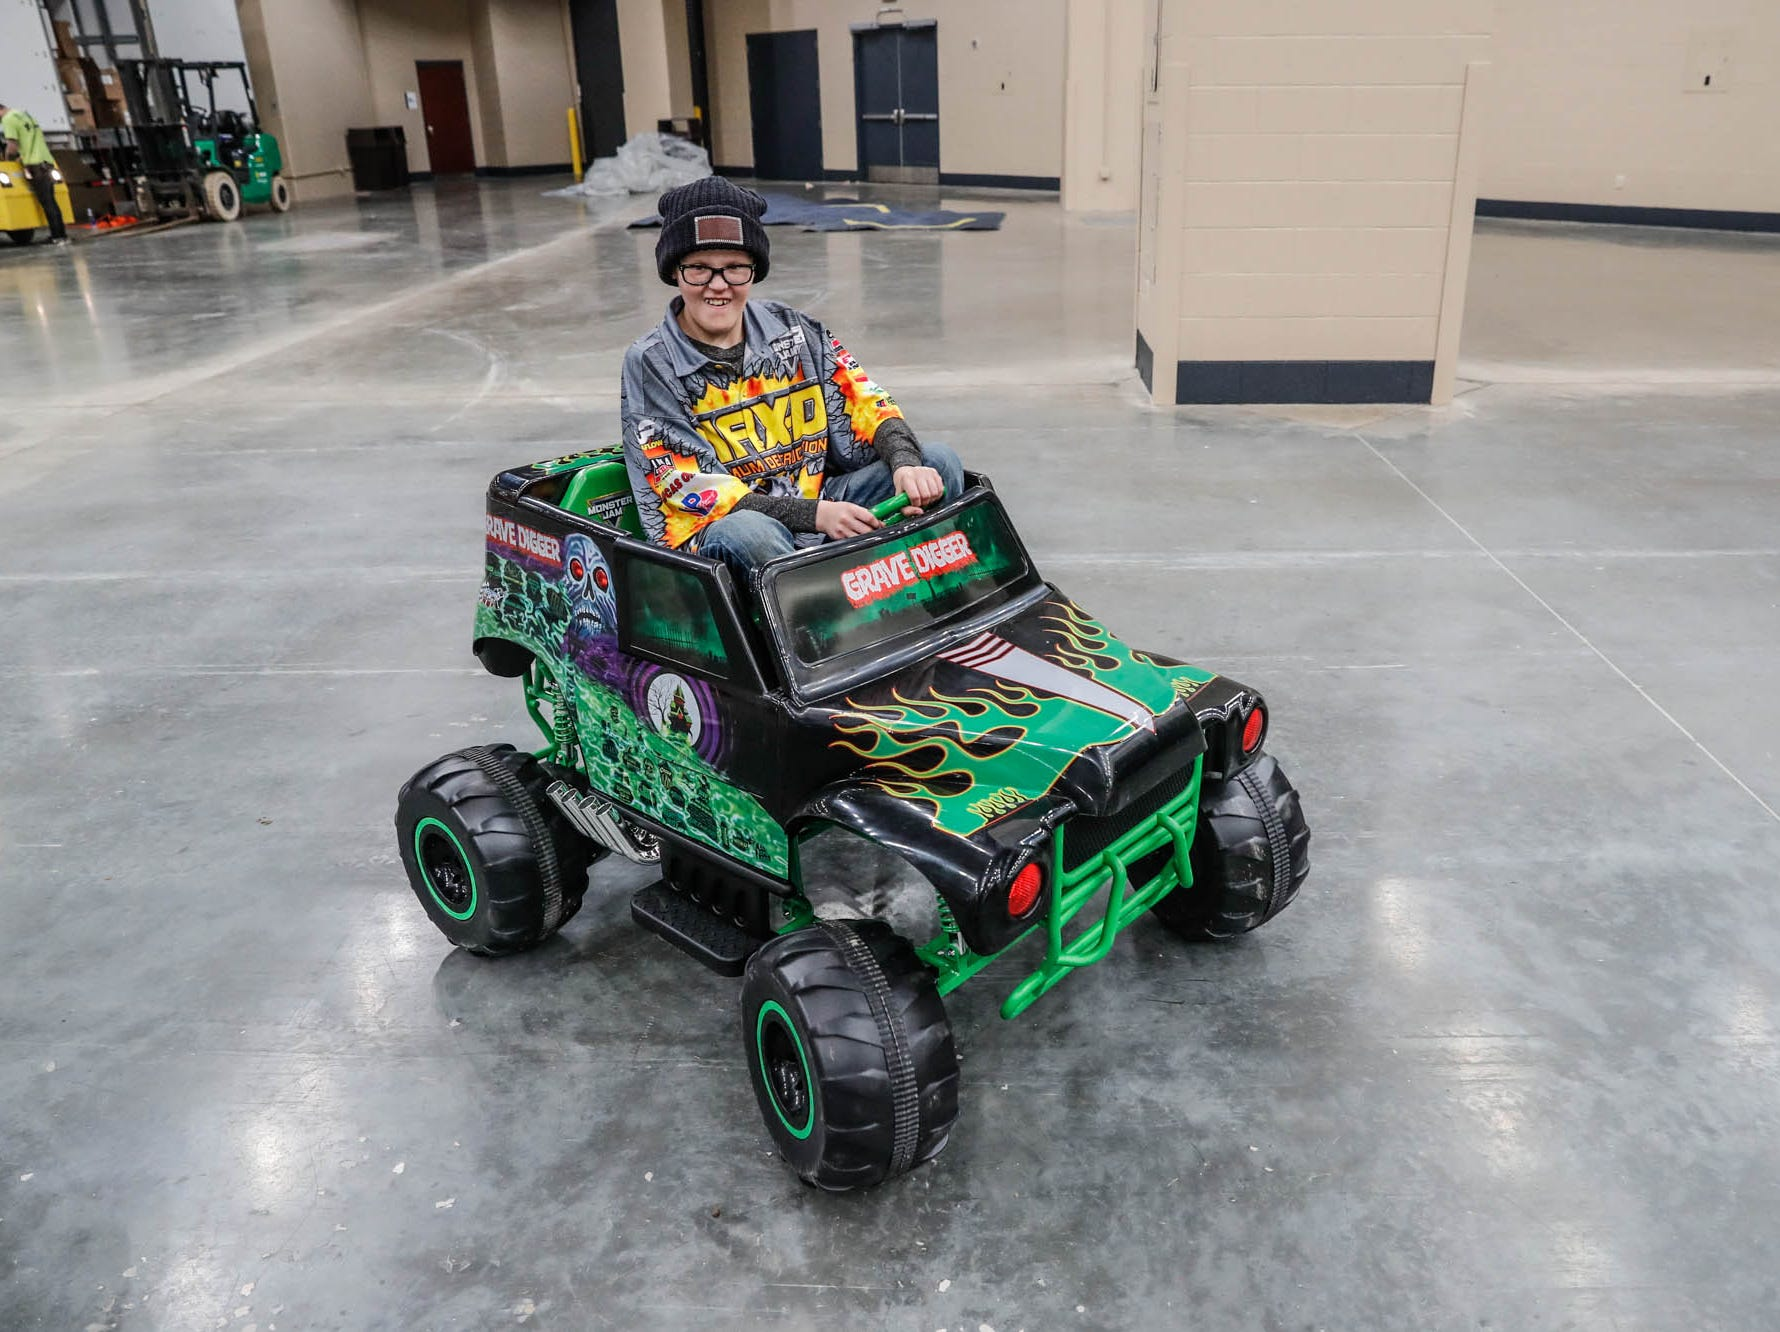 St. Barnabas Catholic School fourth grader, James Egold, who just completed chemo therapy, drives a mini Grave Digger Monster Truck behind the scenes of the Monster Jam at Lucas Oil Stadium on Thursday, Feb. 7, 2019. The visit was thanks to a team up by Monster Jam and Love Your Melon to remodel Egold's room at home while Egold met with Maximum Destruction monster truck driver Tom Meents.